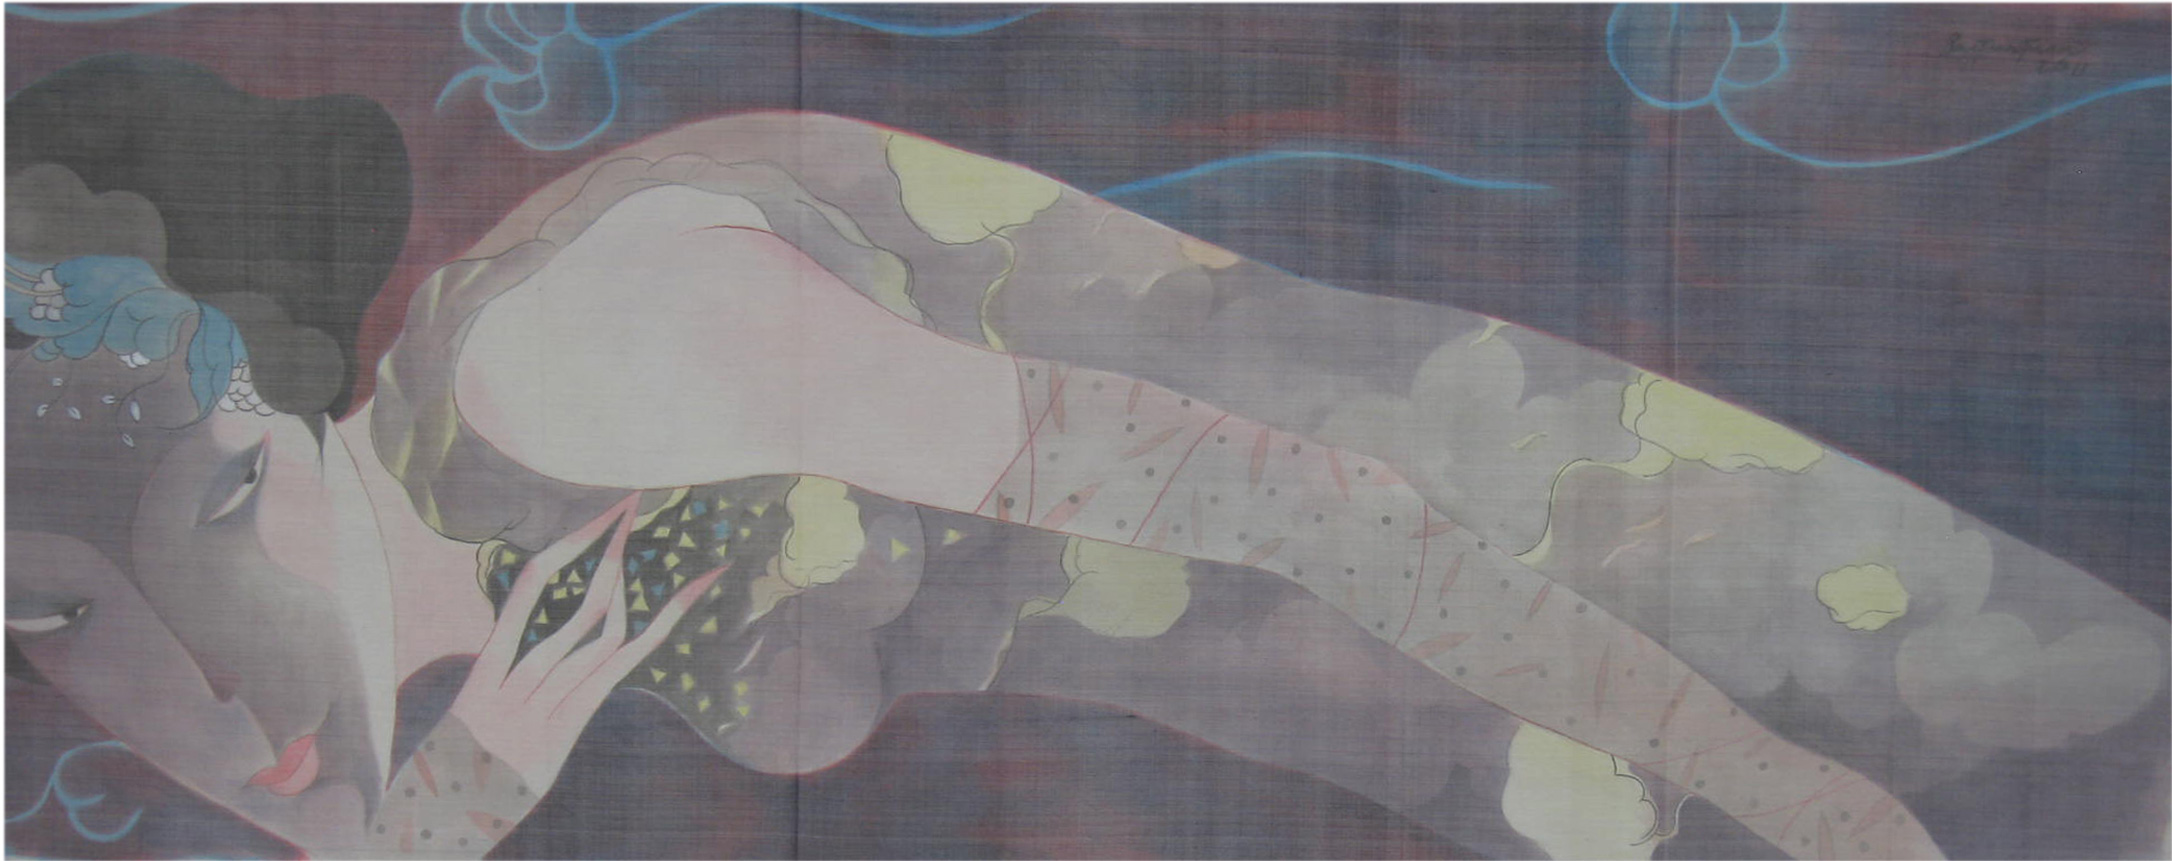 2-buitientuan.dreamy-girl.silk-on-canvas.45x115cm